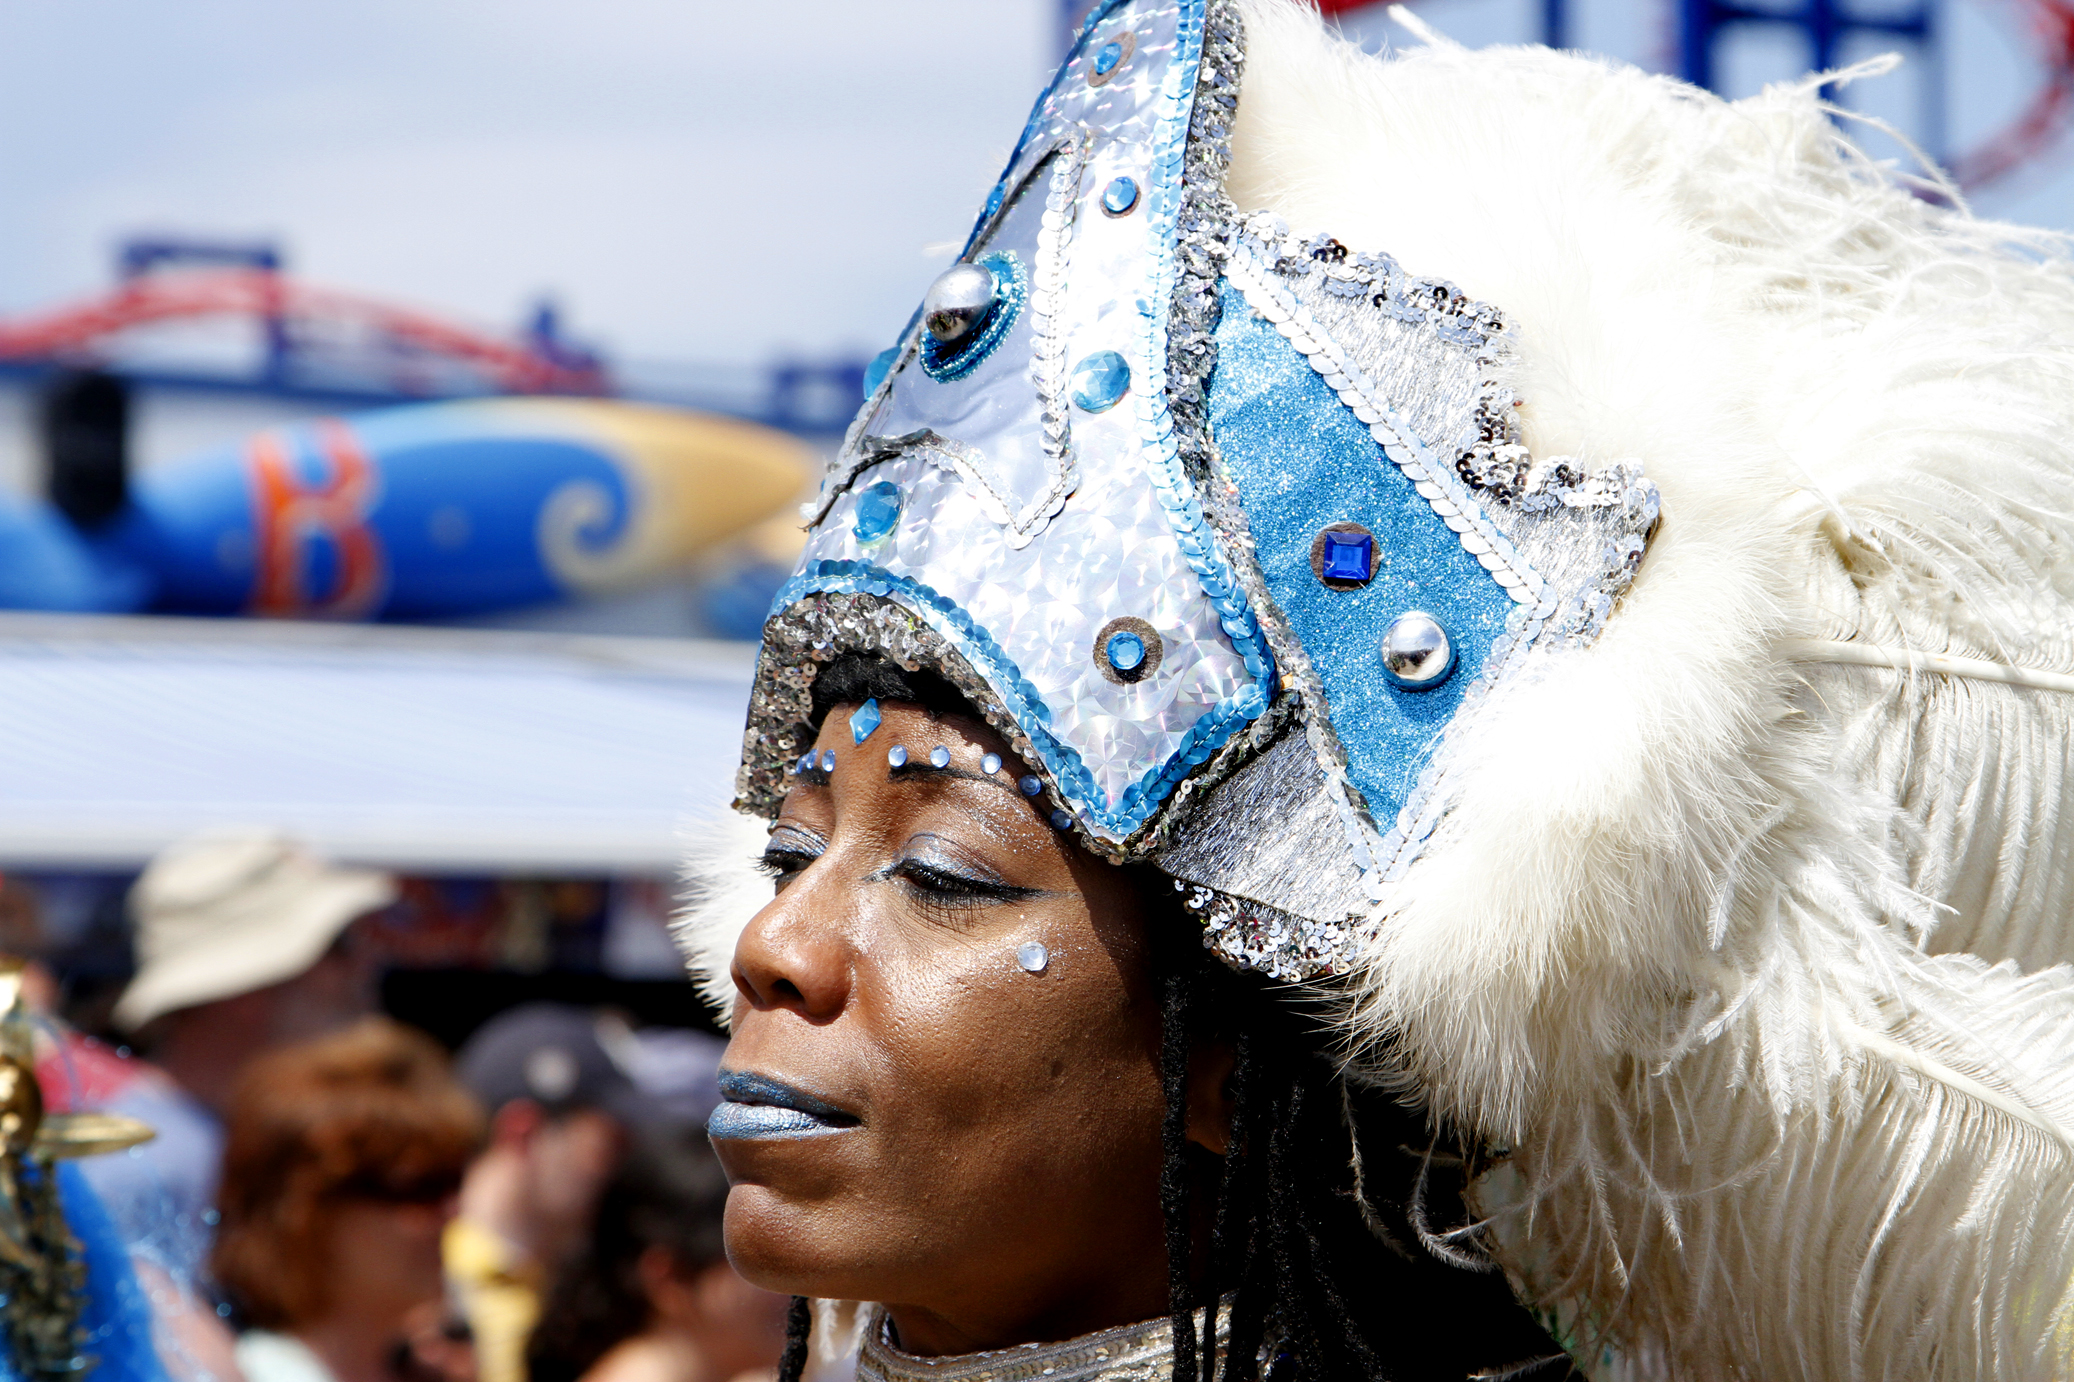 It takes confidence and incredible neck strength to pull of that headdress.